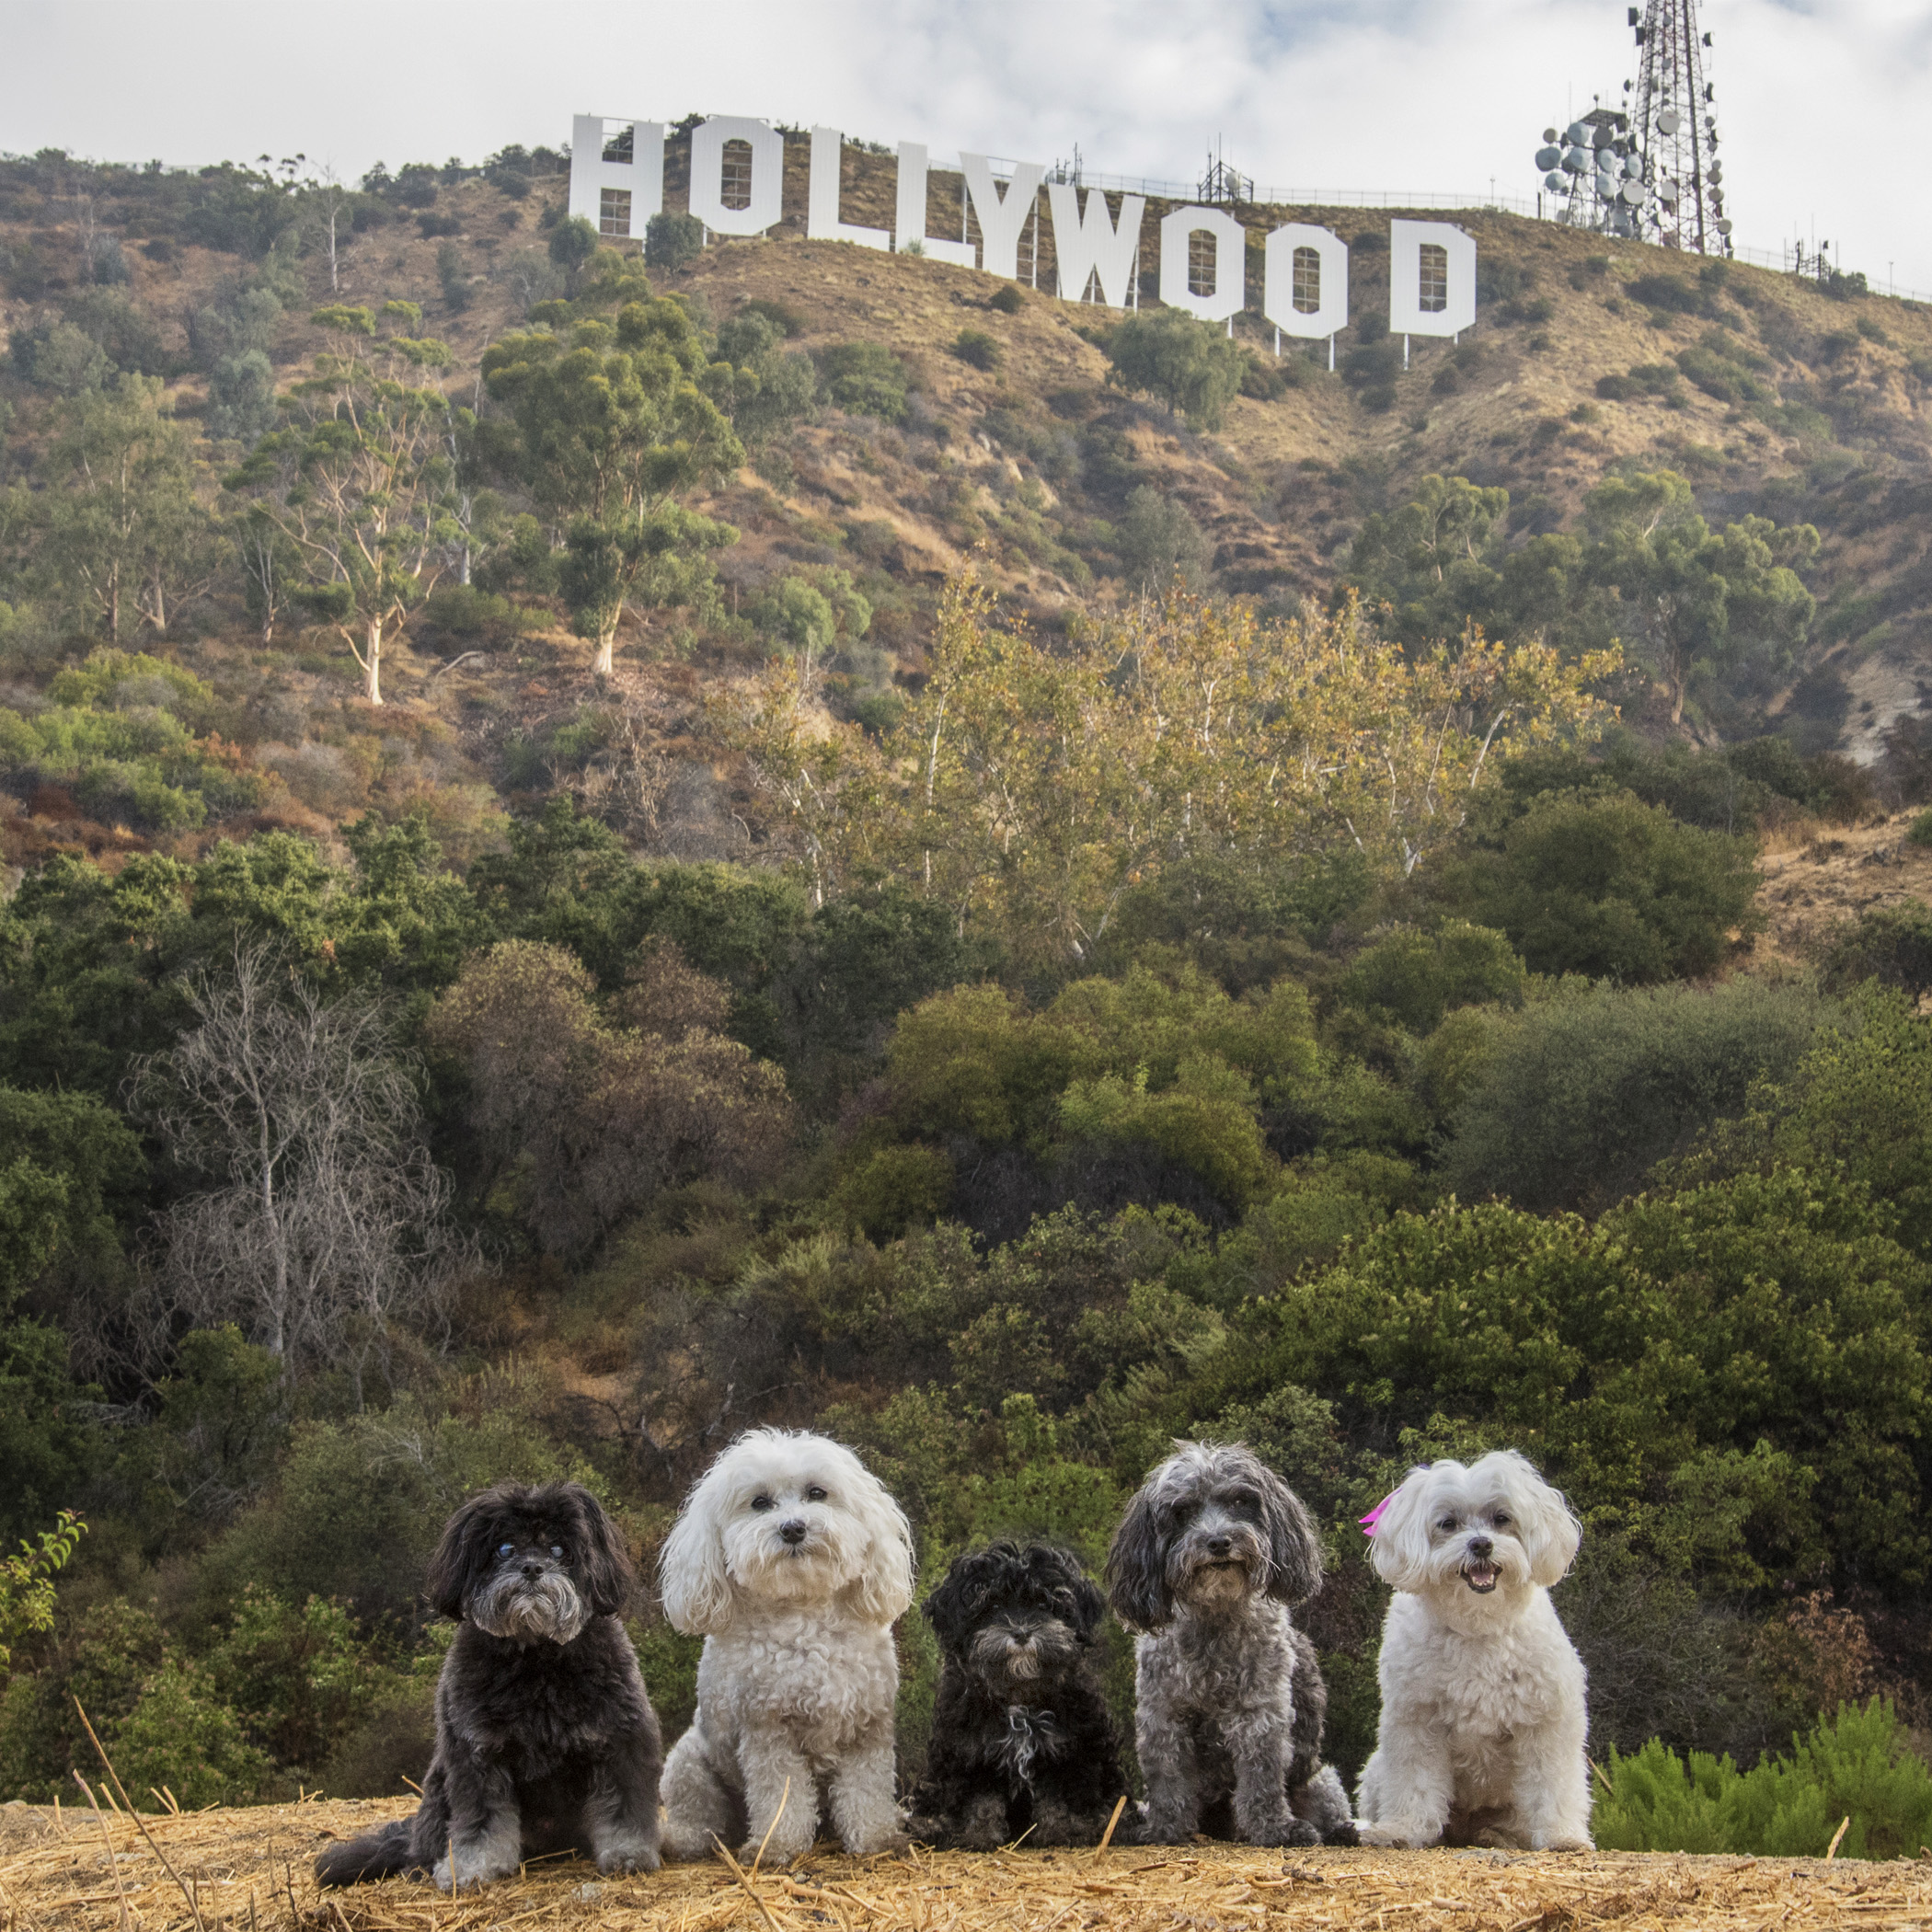 Hollywood, we have arrived!! If anyone knows of any walk-on extras needed, we're ready and available!